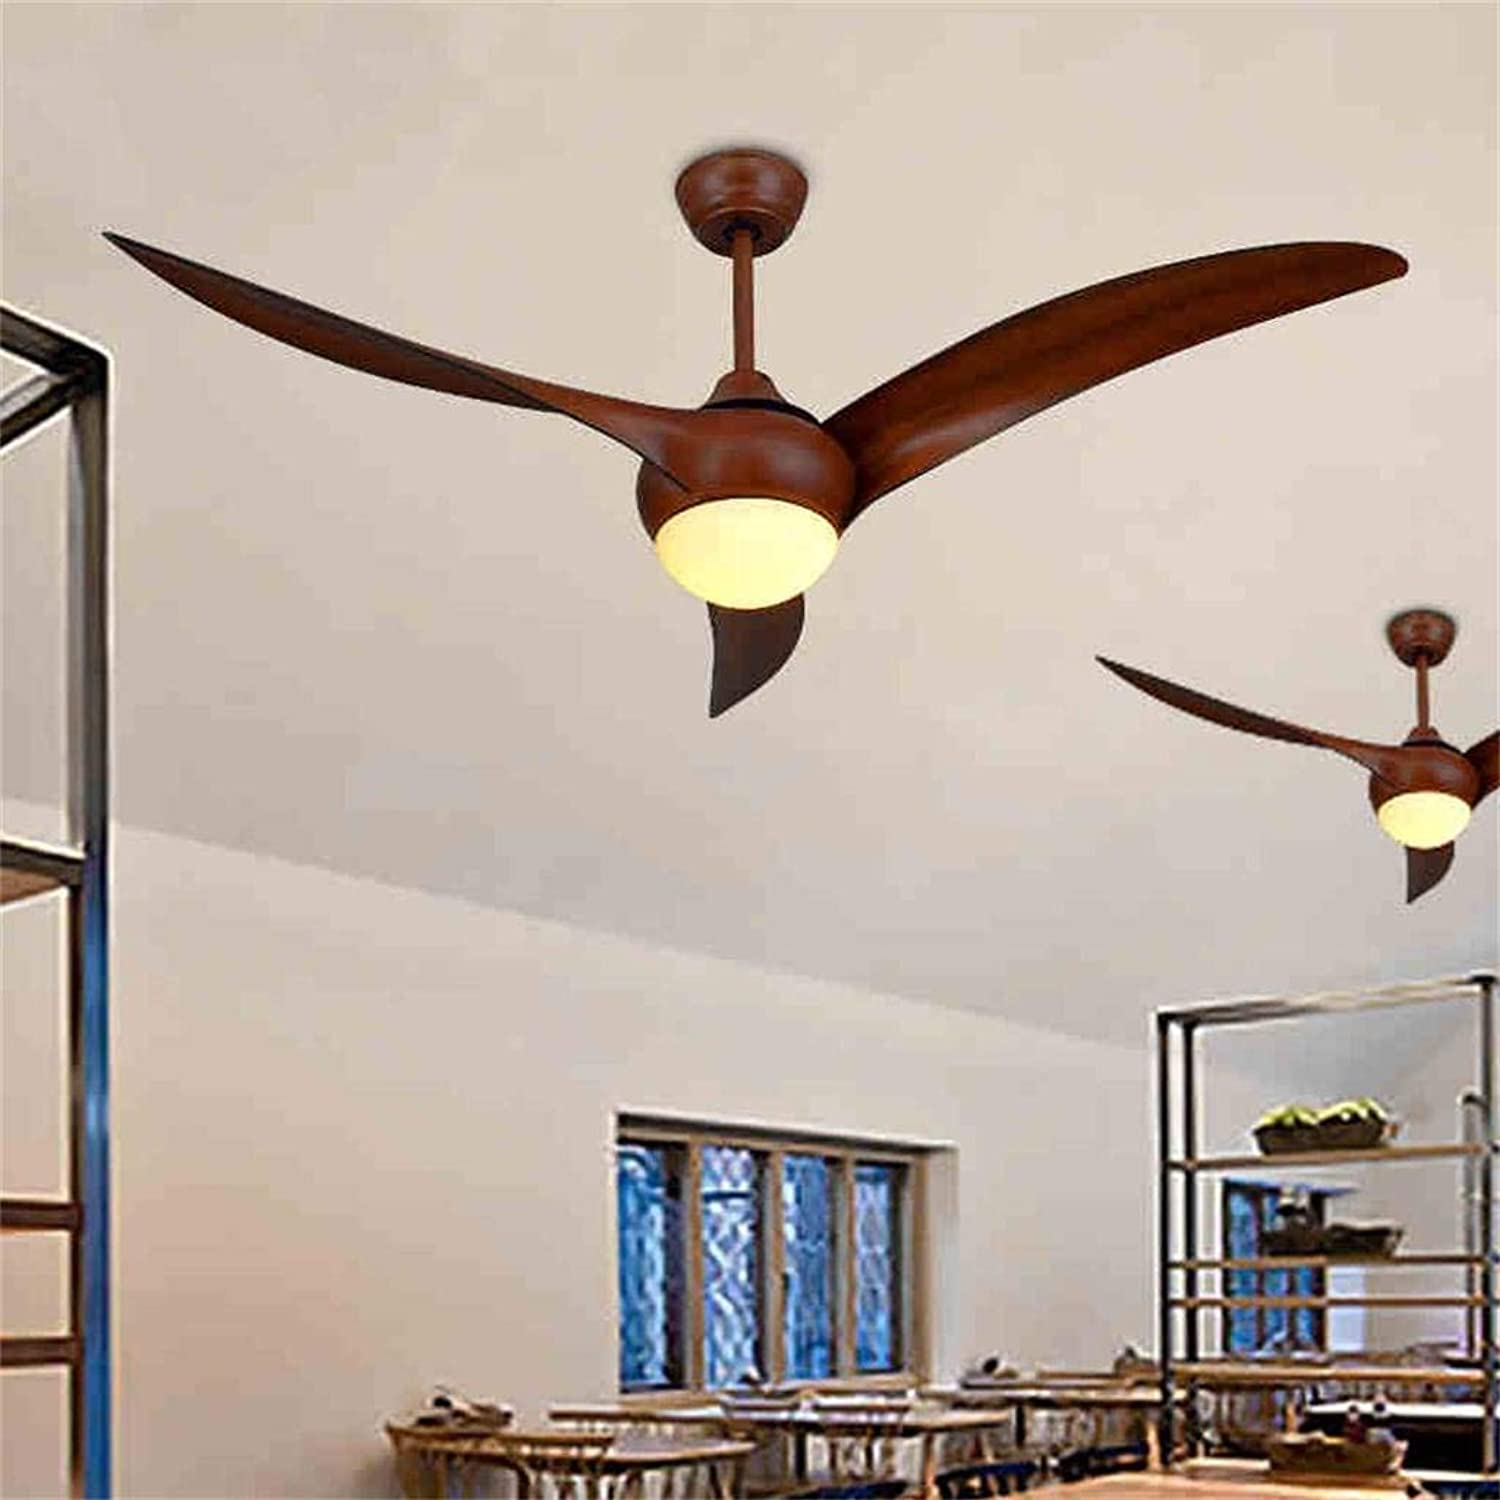 WHKHY Shades Hotel Retro Fan with Led Lamps Ceiling Fan Lamp Lighting Chandelier Continental Kiba Bedrooms Lobby